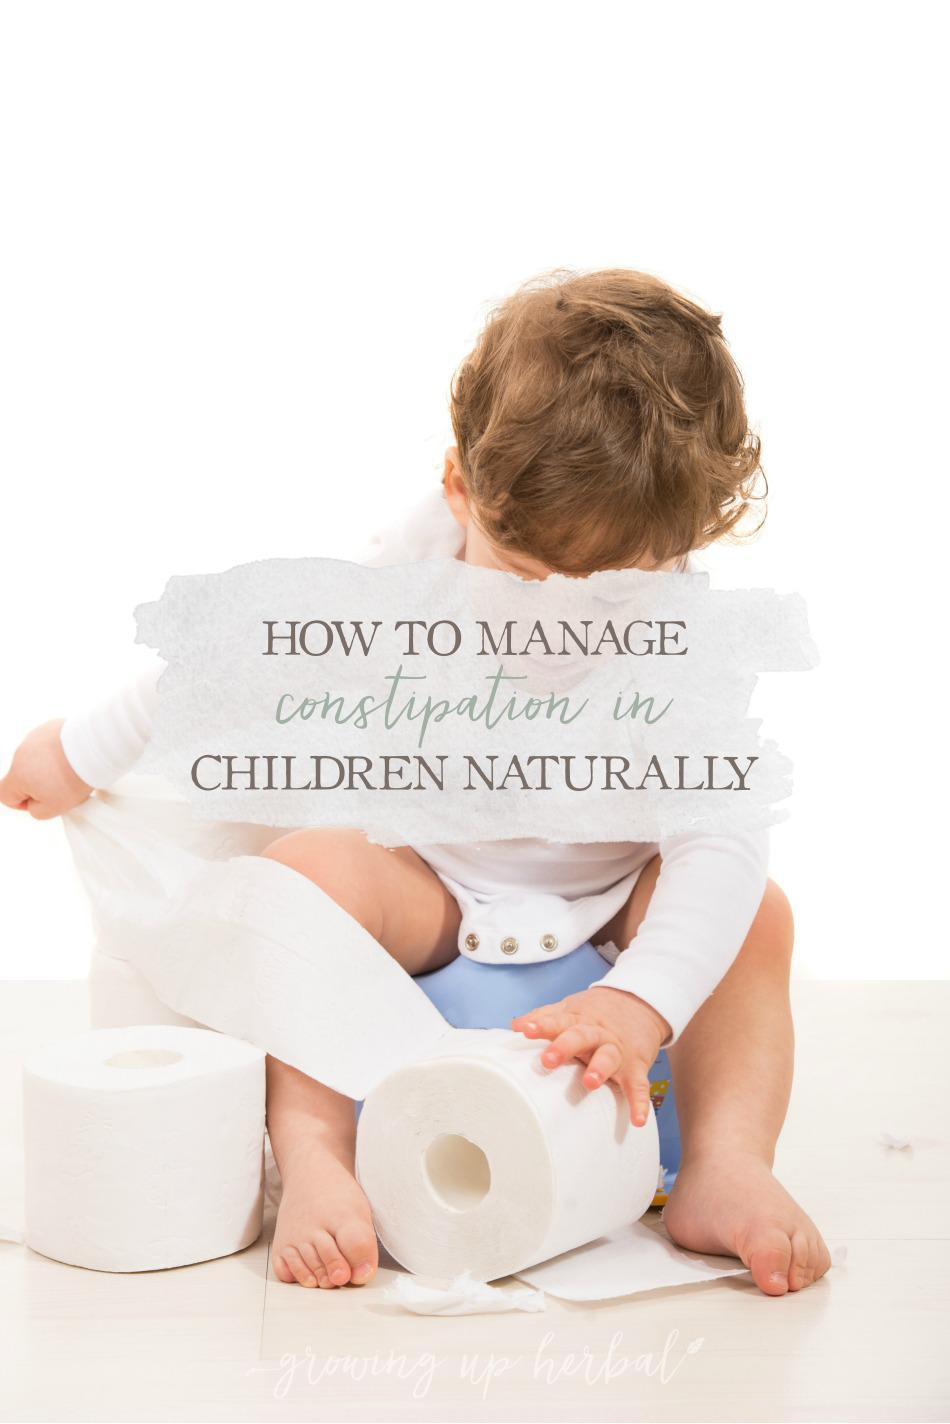 How To Manage Constipation In Children Naturally | Growing Up Herbal | Is your kiddo constipated? Here's how to manage it with natural methods.